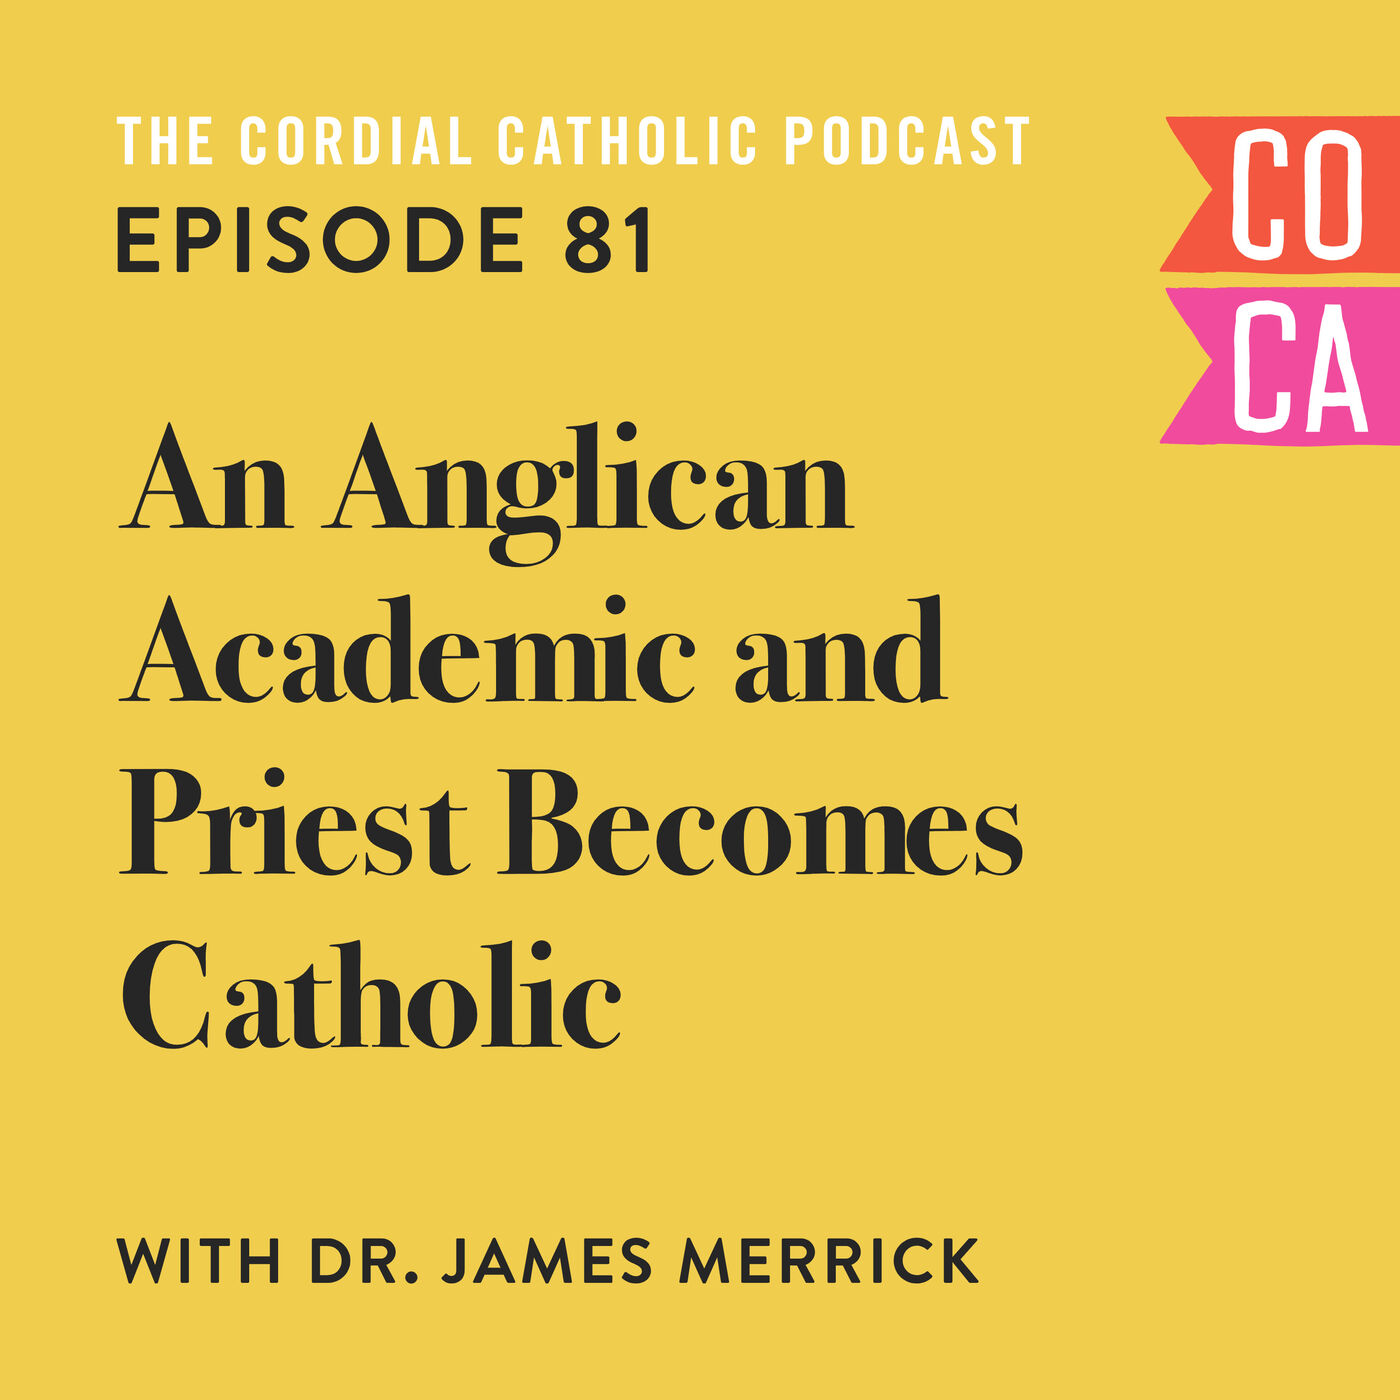 081: An Anglican Academic and Priest Becomes Catholic (w/ Dr. James Merrick)